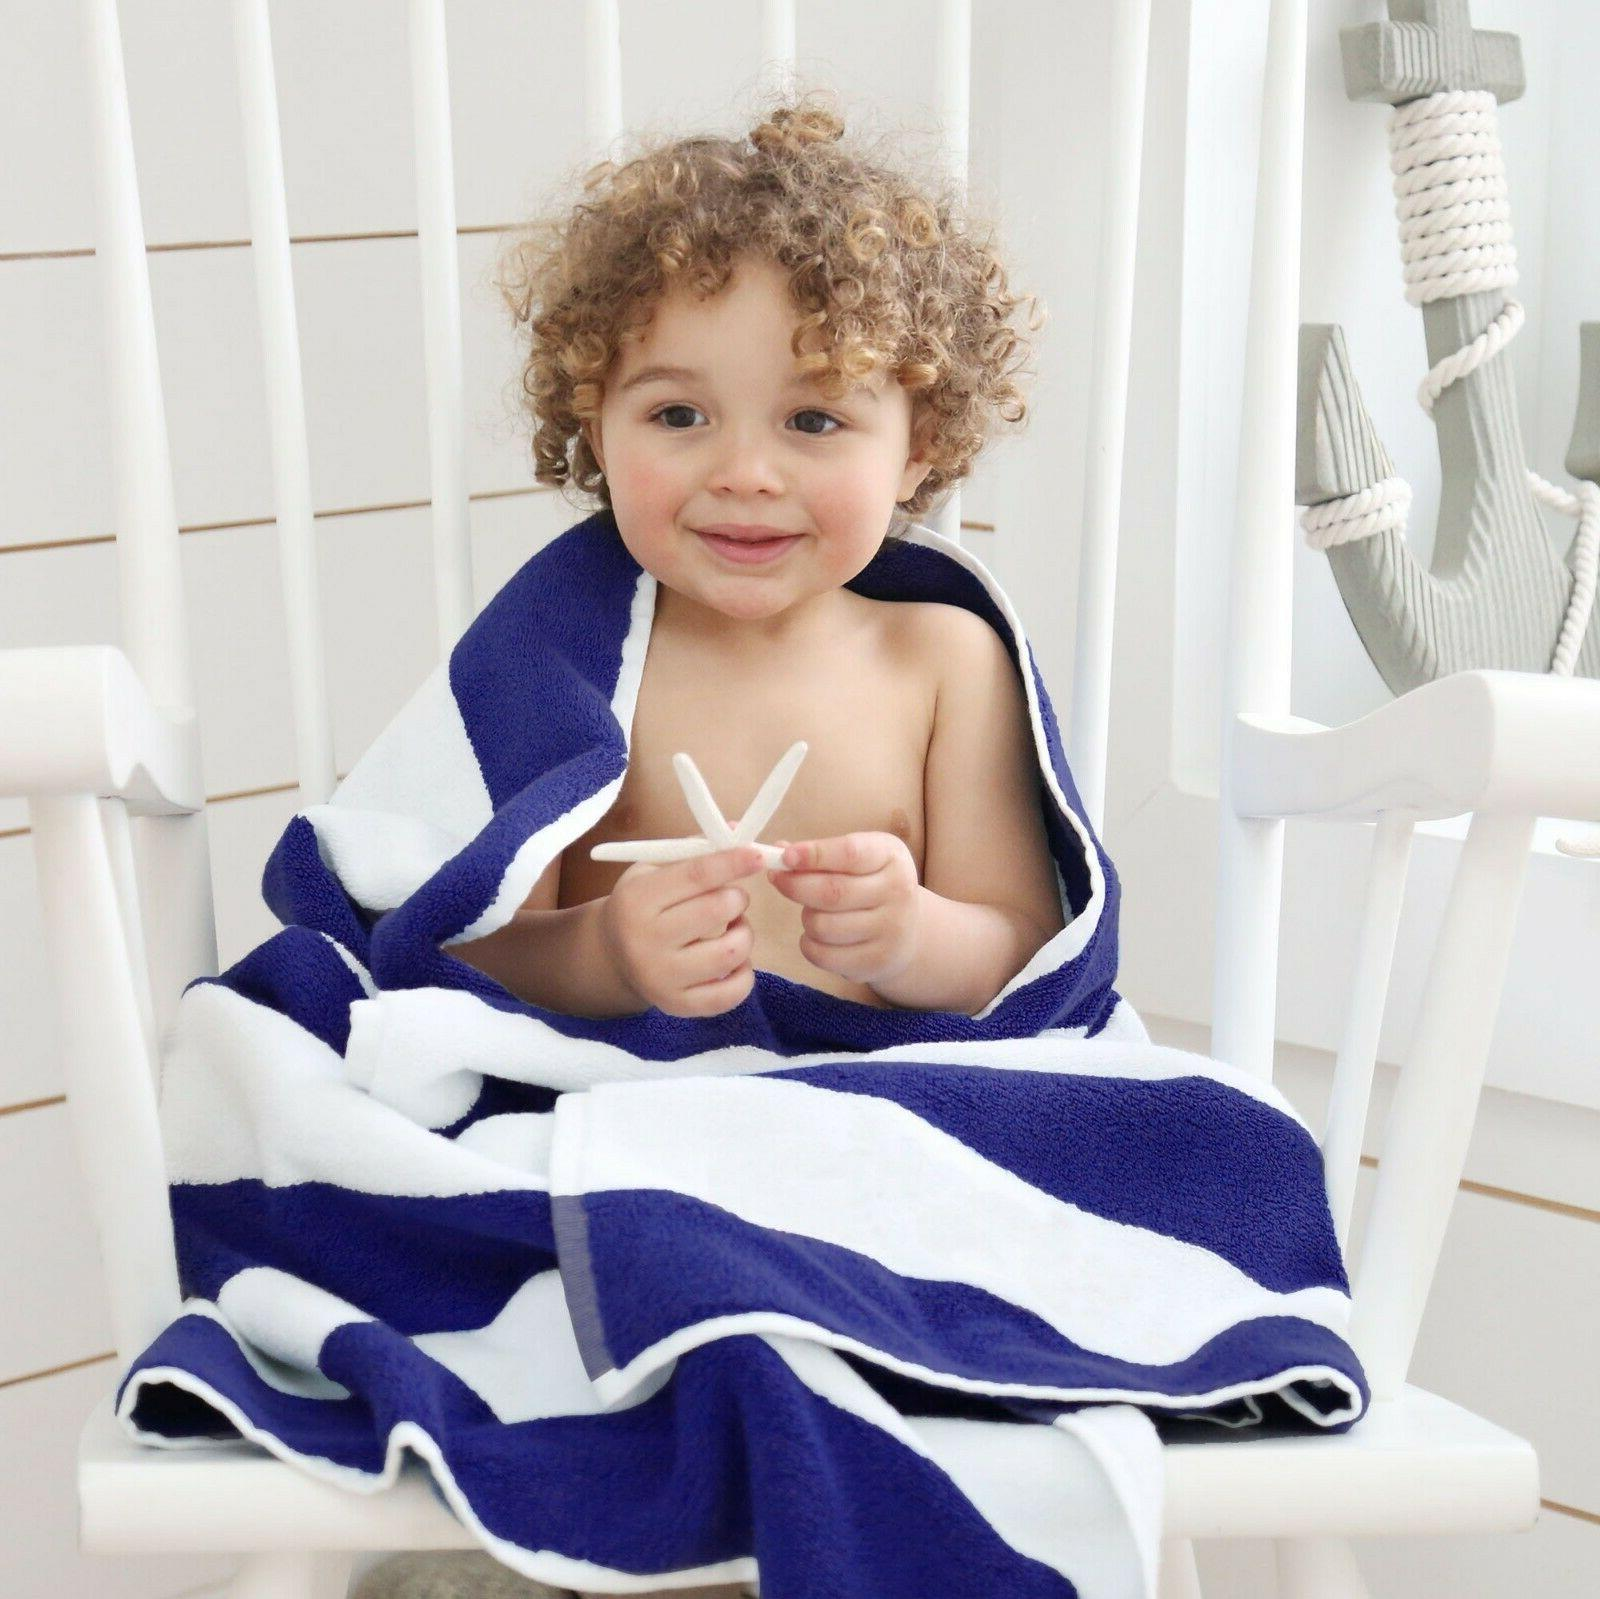 Large Beach Towels Disposable Pack of 10 Set Pool Cabana 100